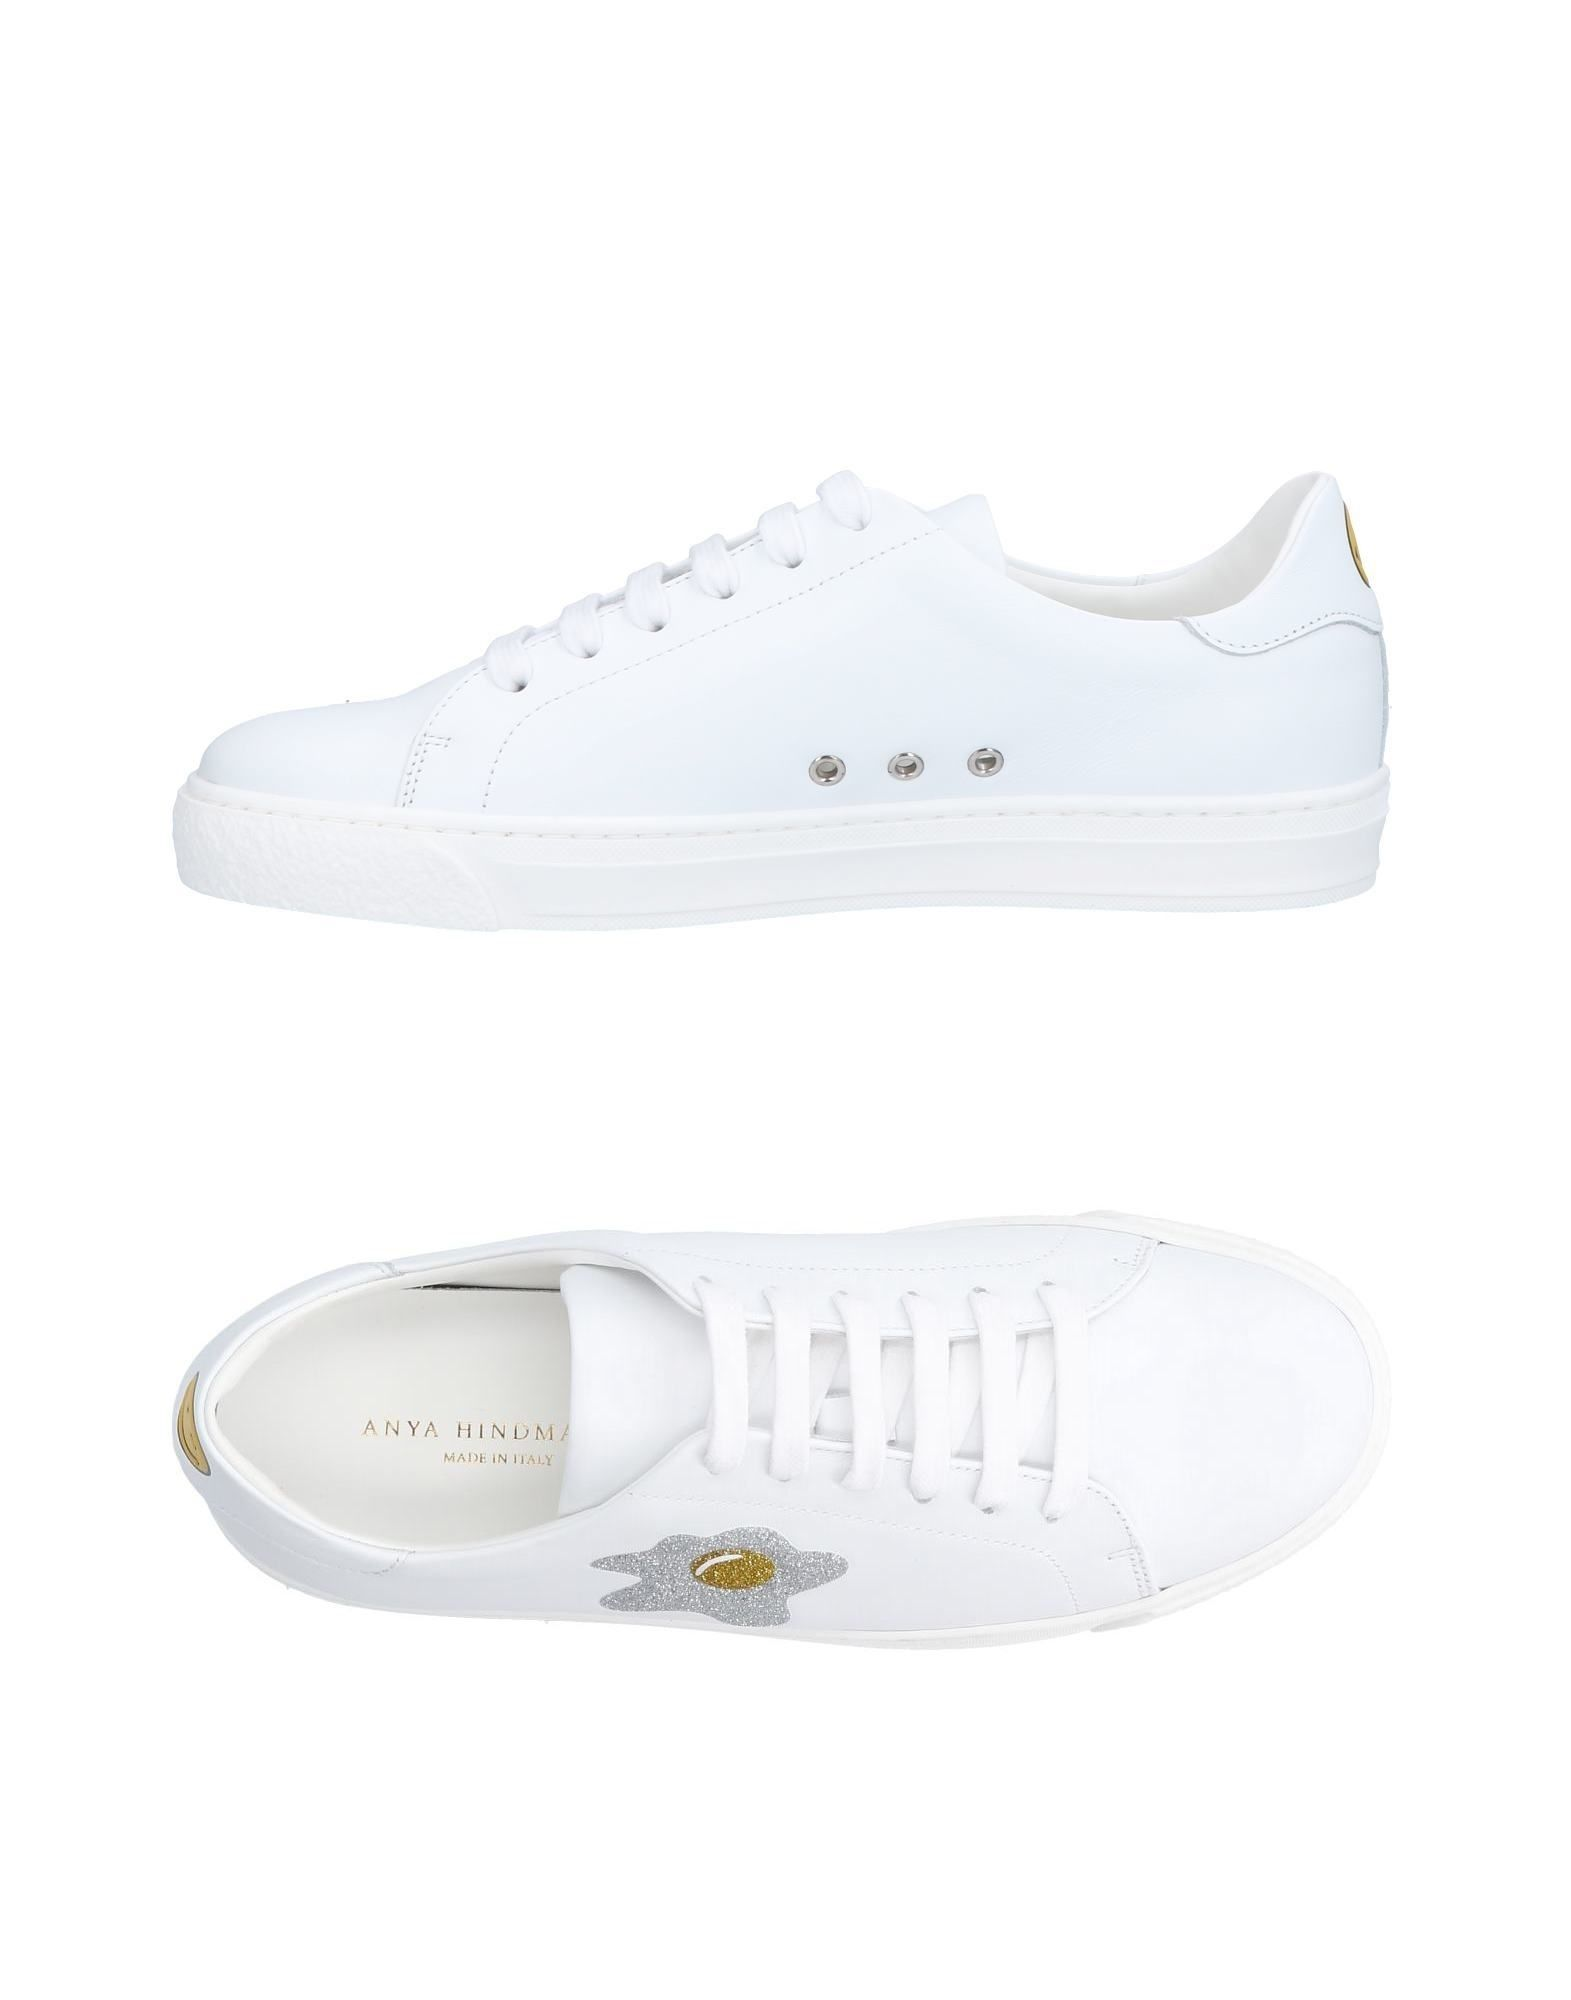 Anya Hindmarch Sneakers Sneakers Sneakers - Women Anya Hindmarch Sneakers online on  Canada - 11460174DL b96e72